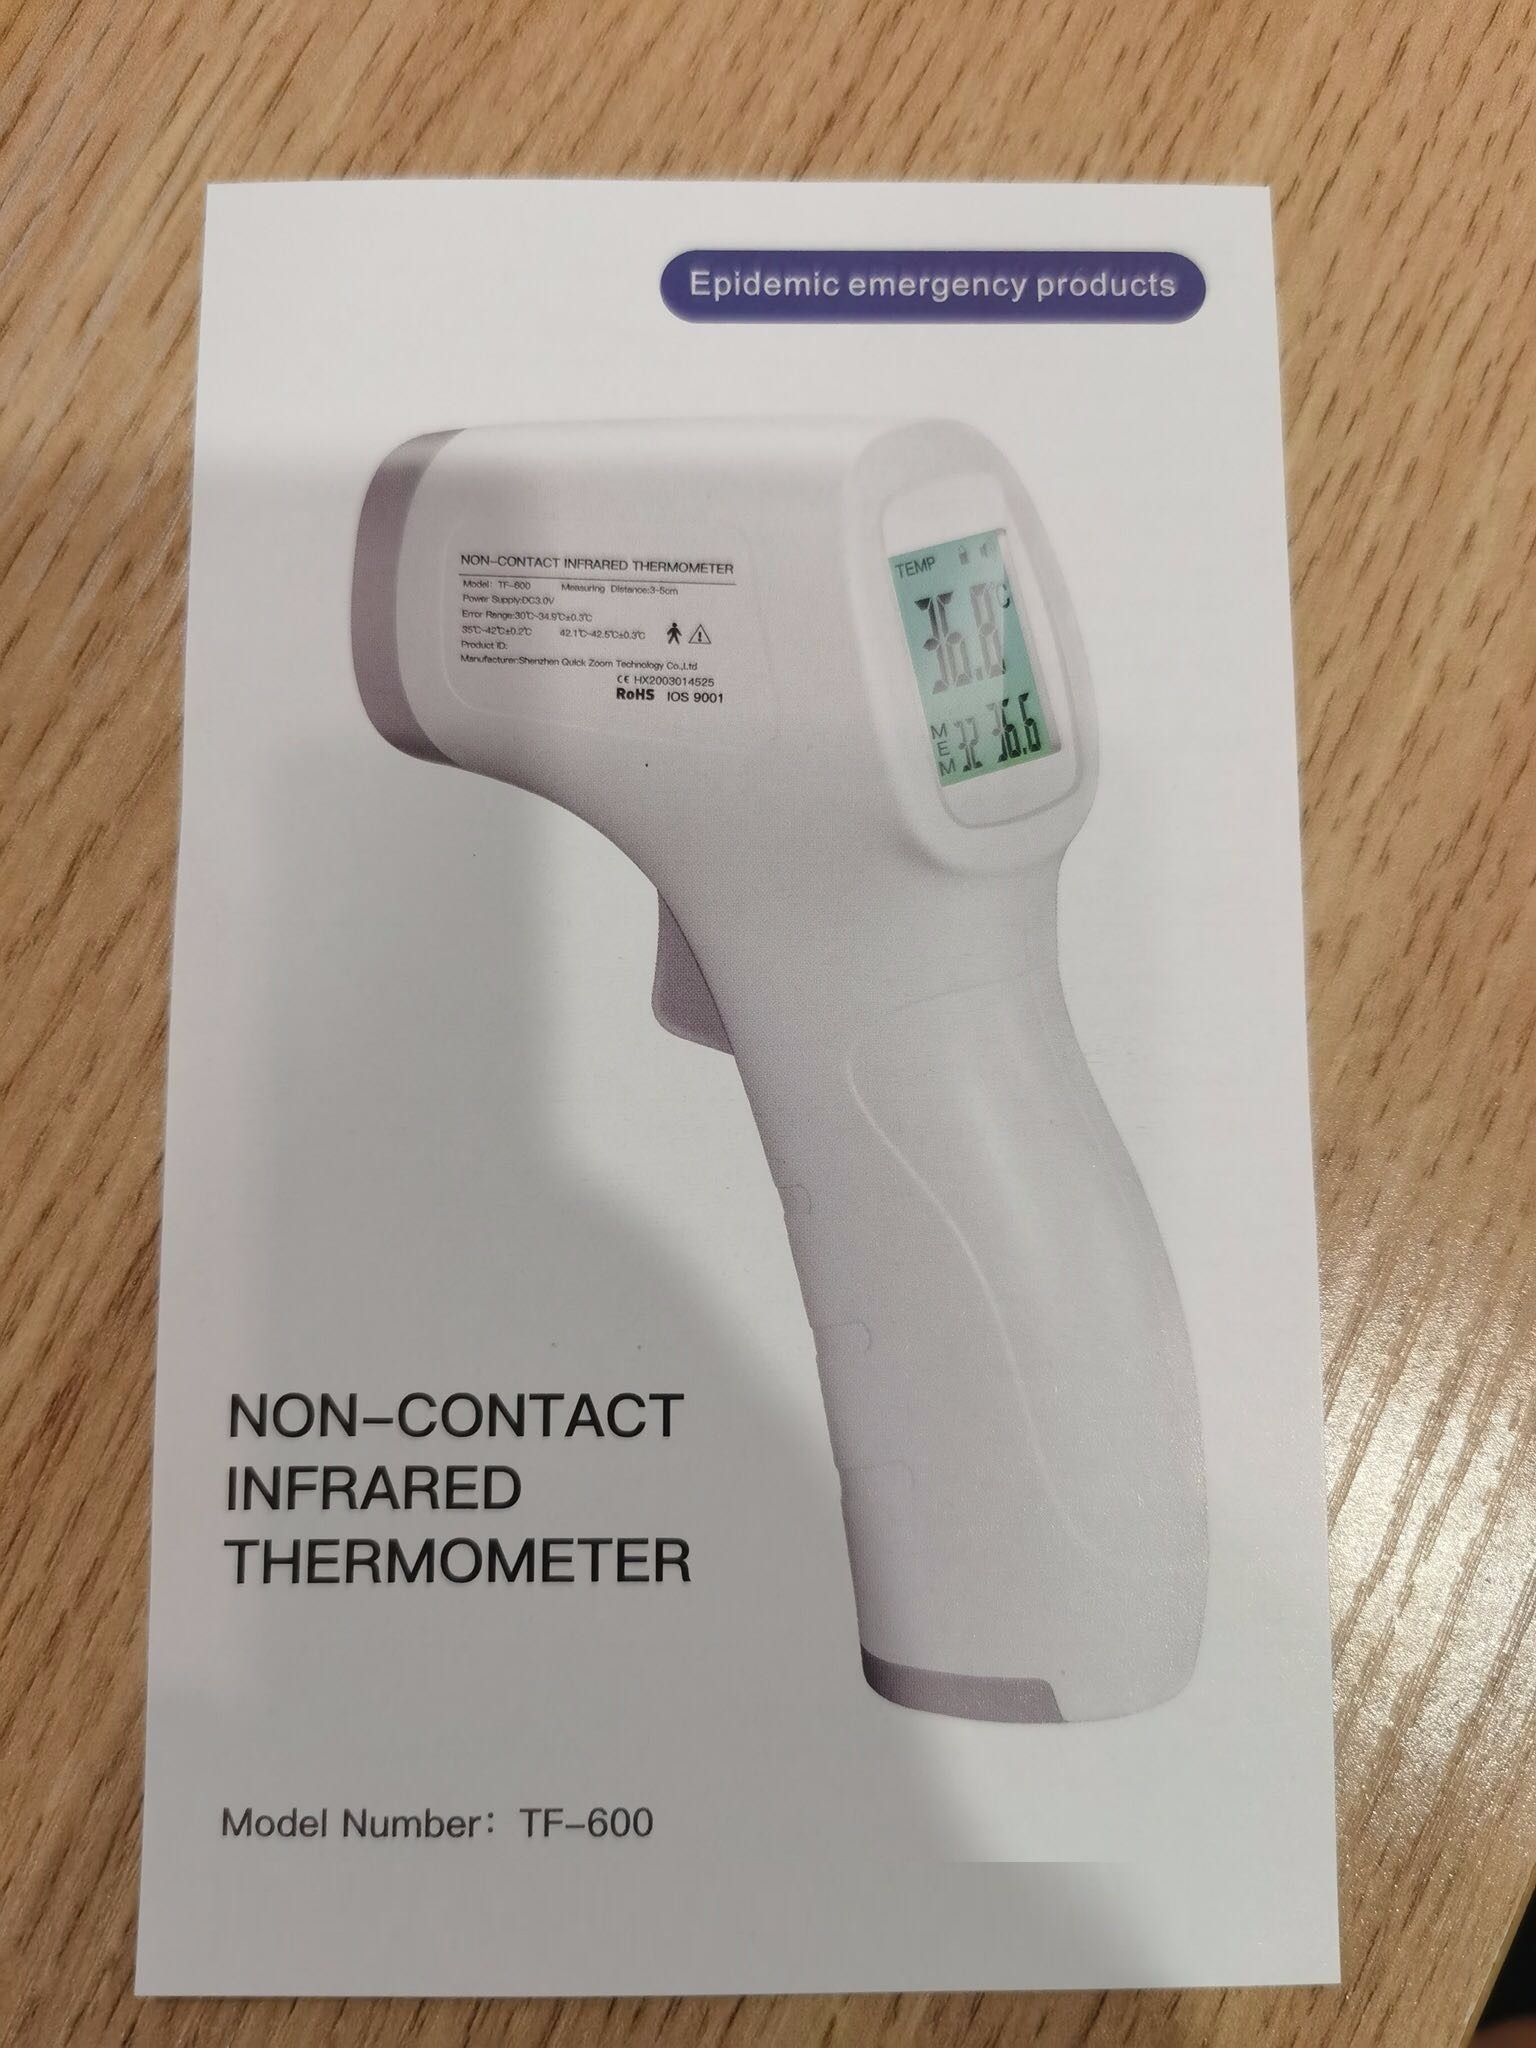 Non-Contact Infrard Thermometer forehead thermometer stocks good price good quality